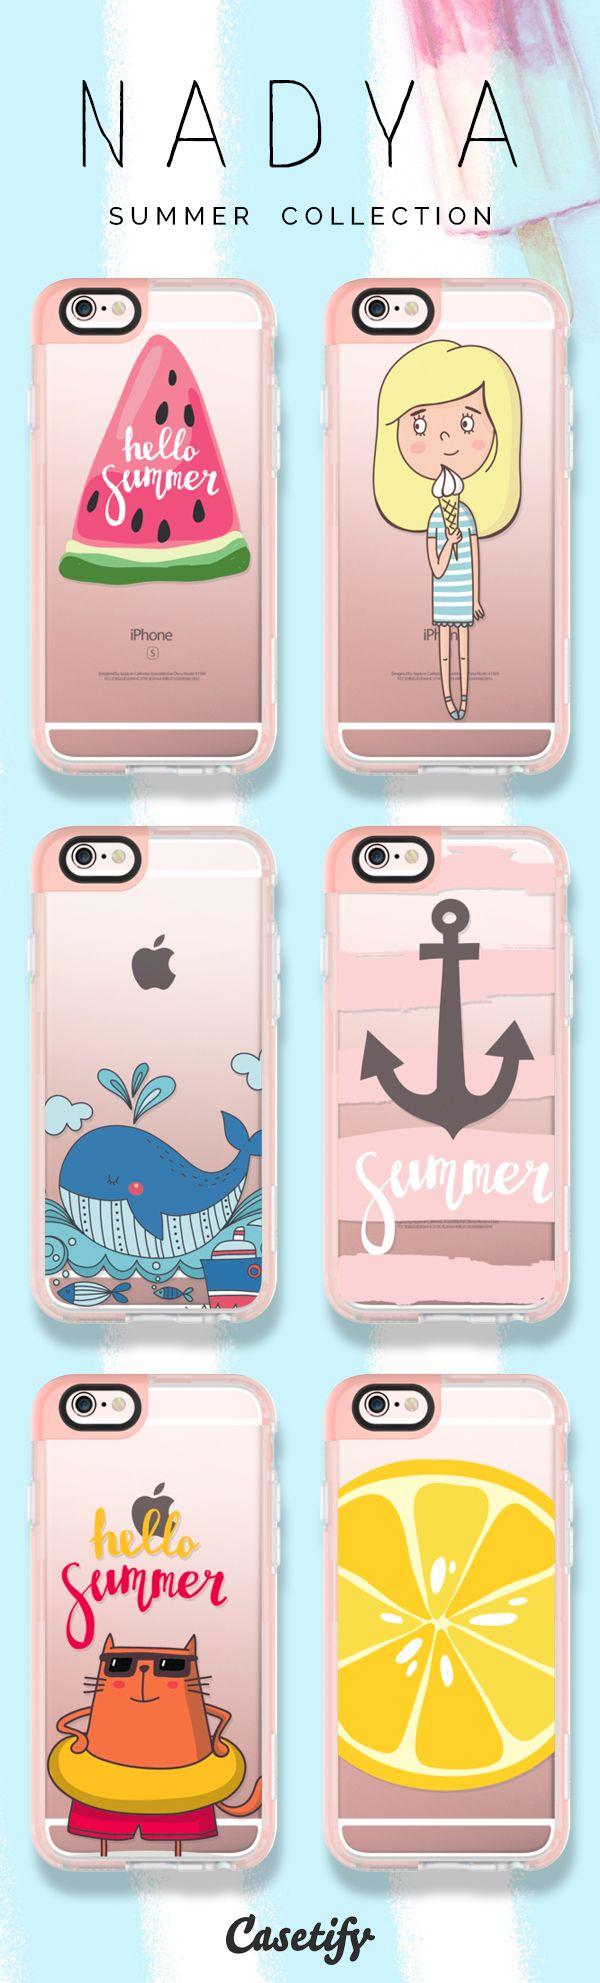 Hello Summer. Check out these #summer themed phone cases designed by Nadya here >>> https://www.casetify.com/artworks/mc2Wm0gDZg   @casetify